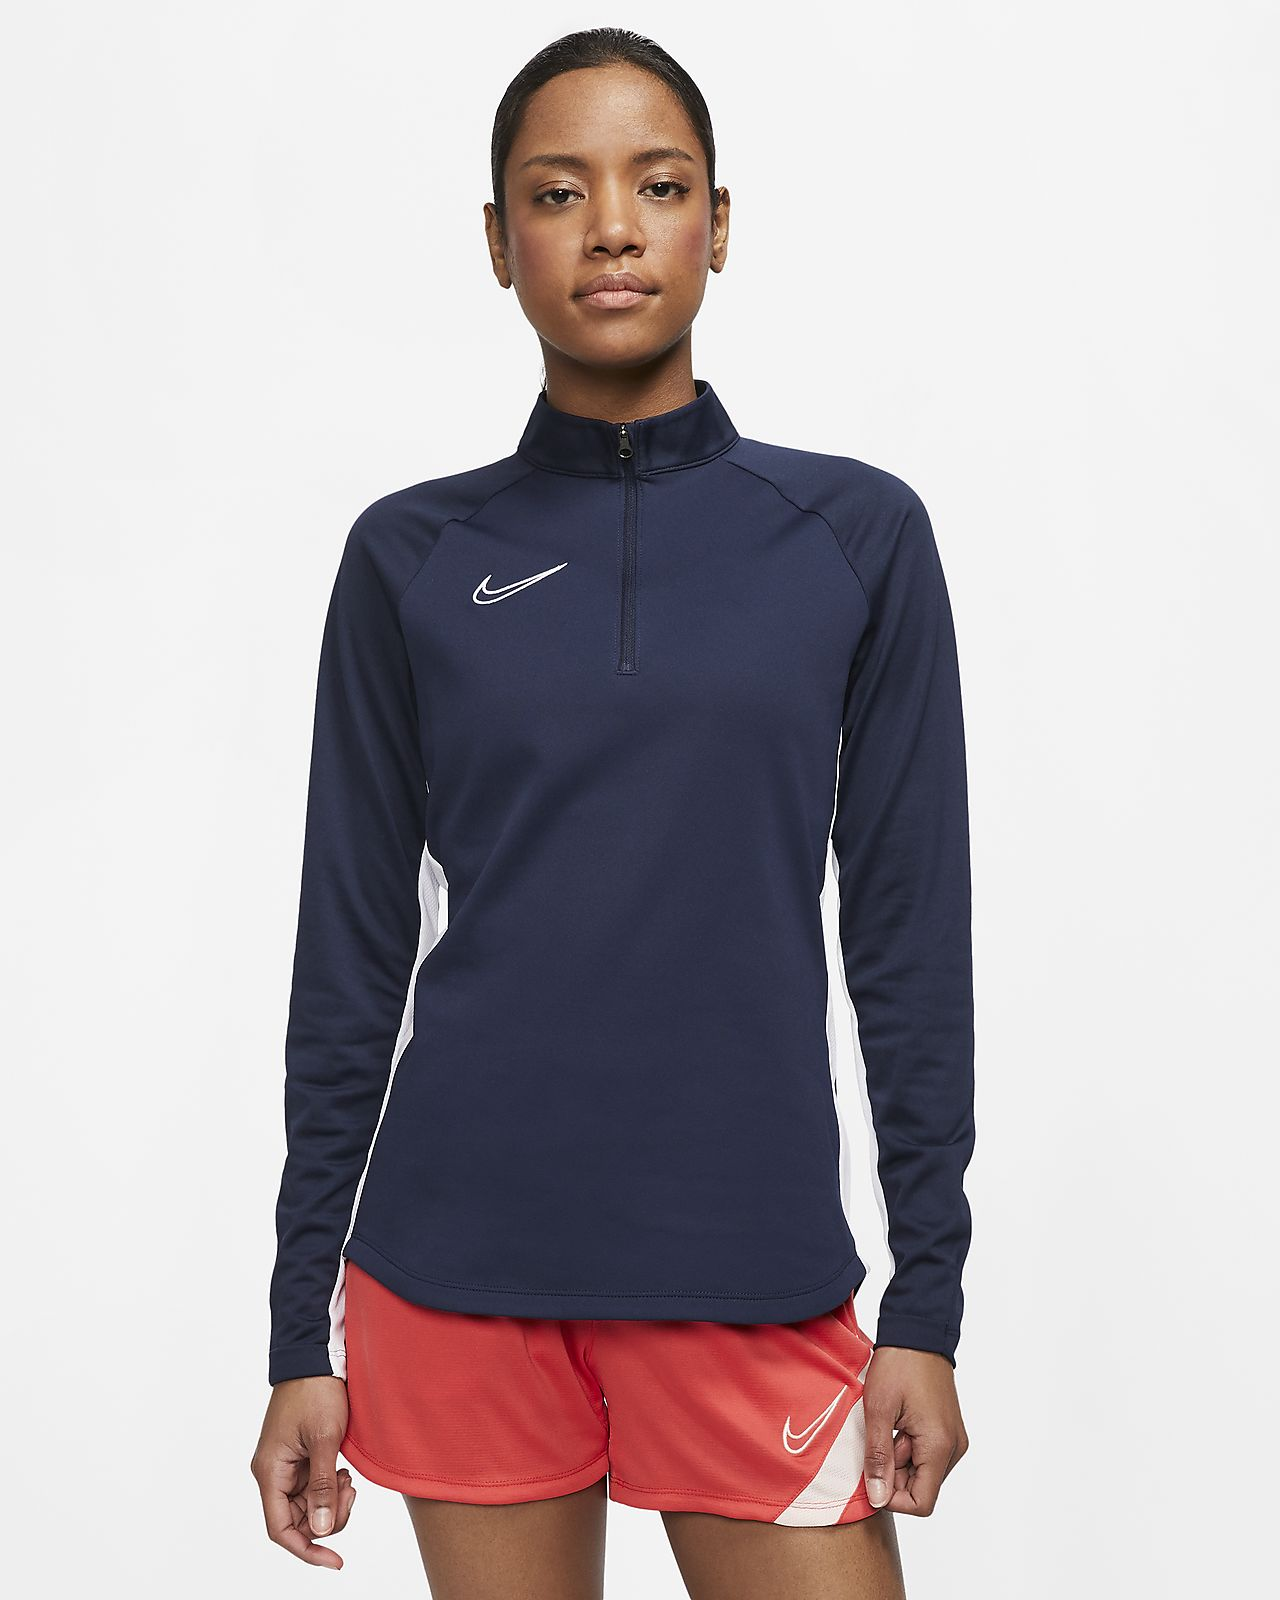 Nike Dri-FIT Academy Women's Football Drill Top